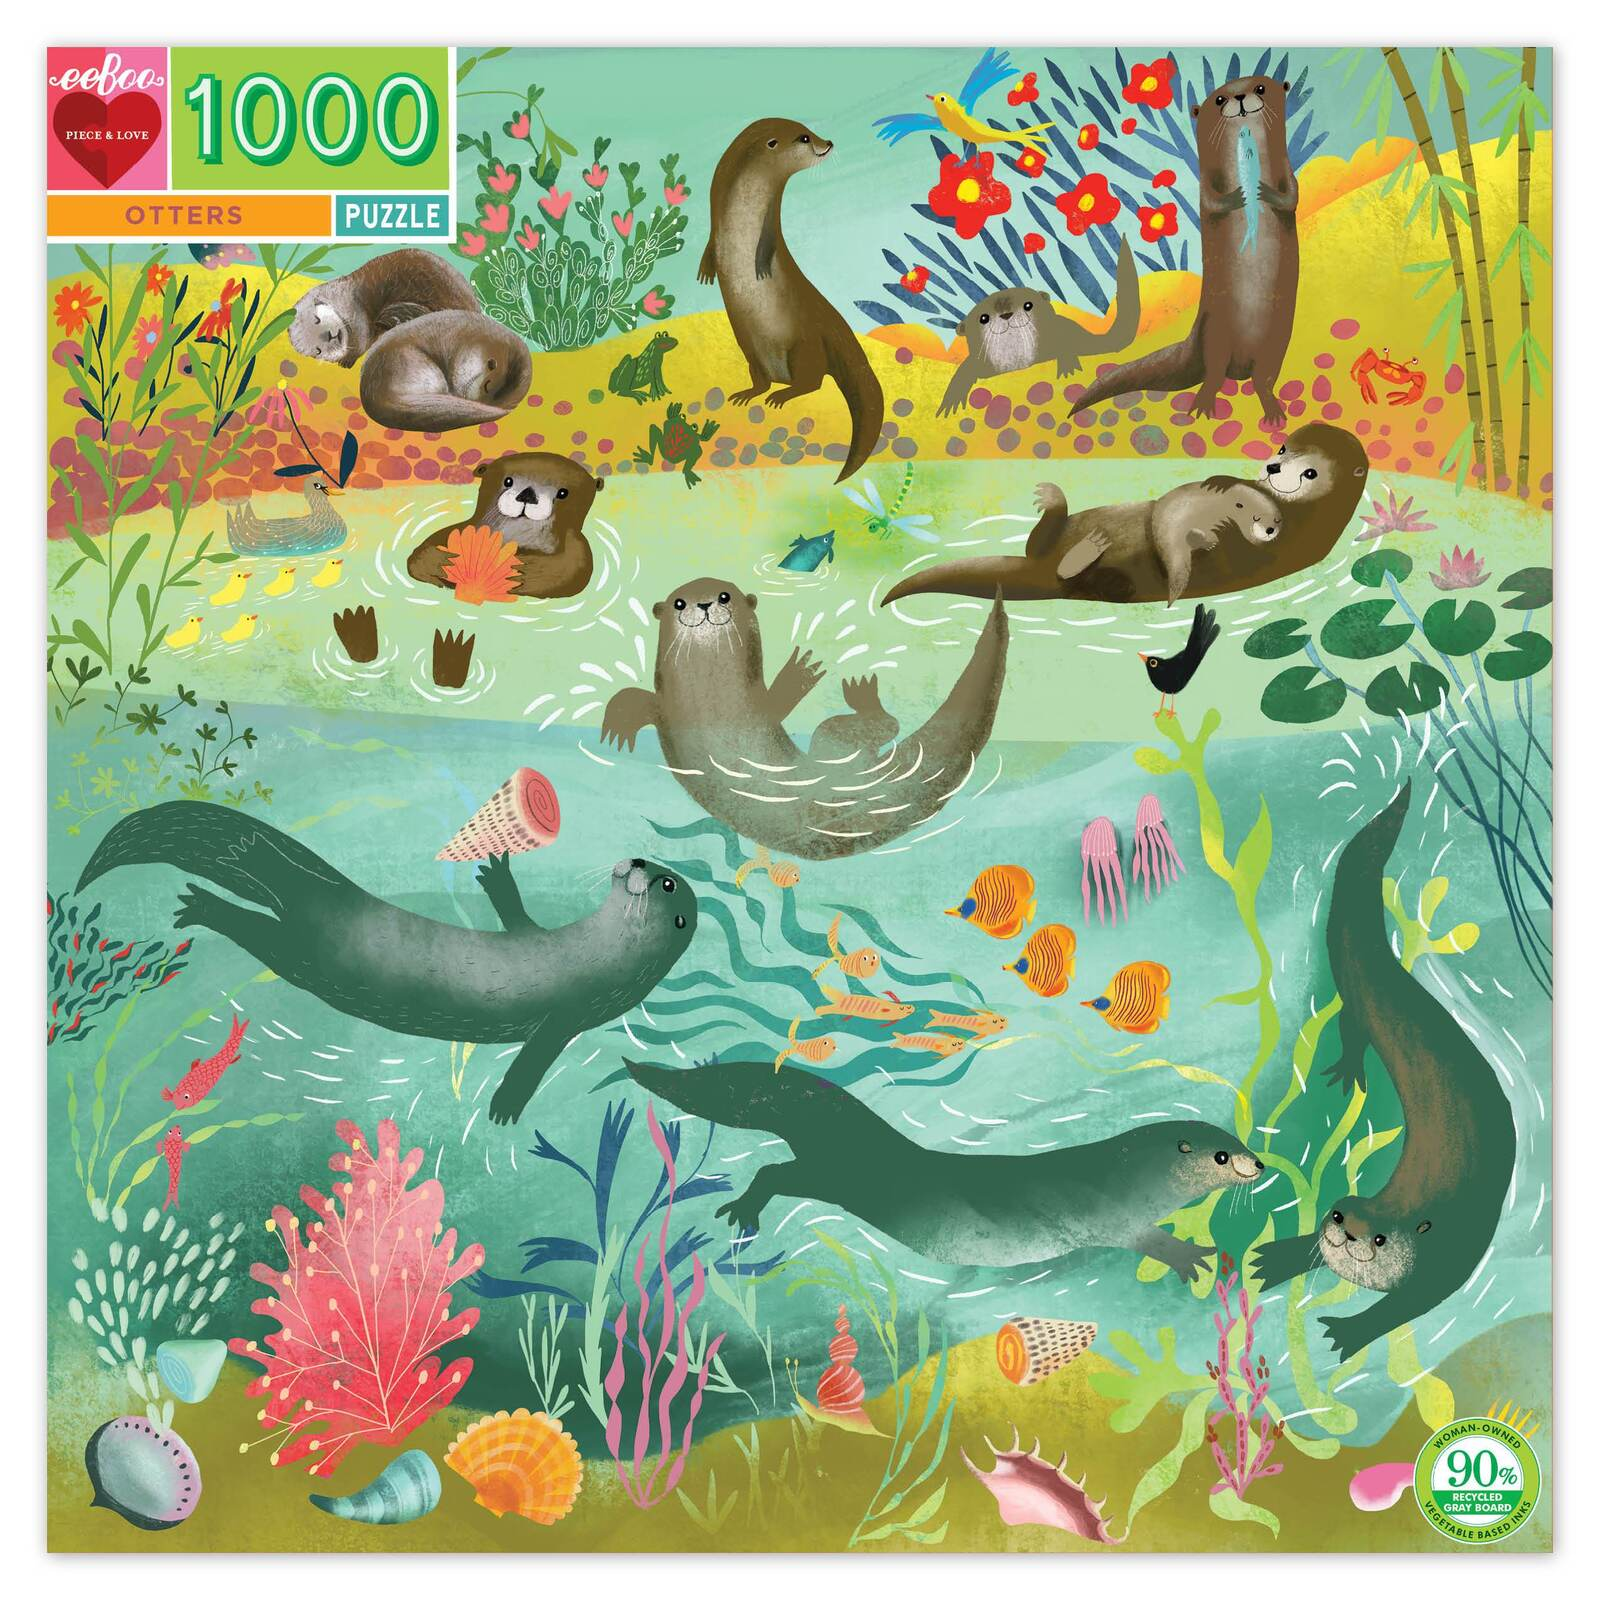 Eeboo Otters Puzzle 1000 Piece at Little Sprout